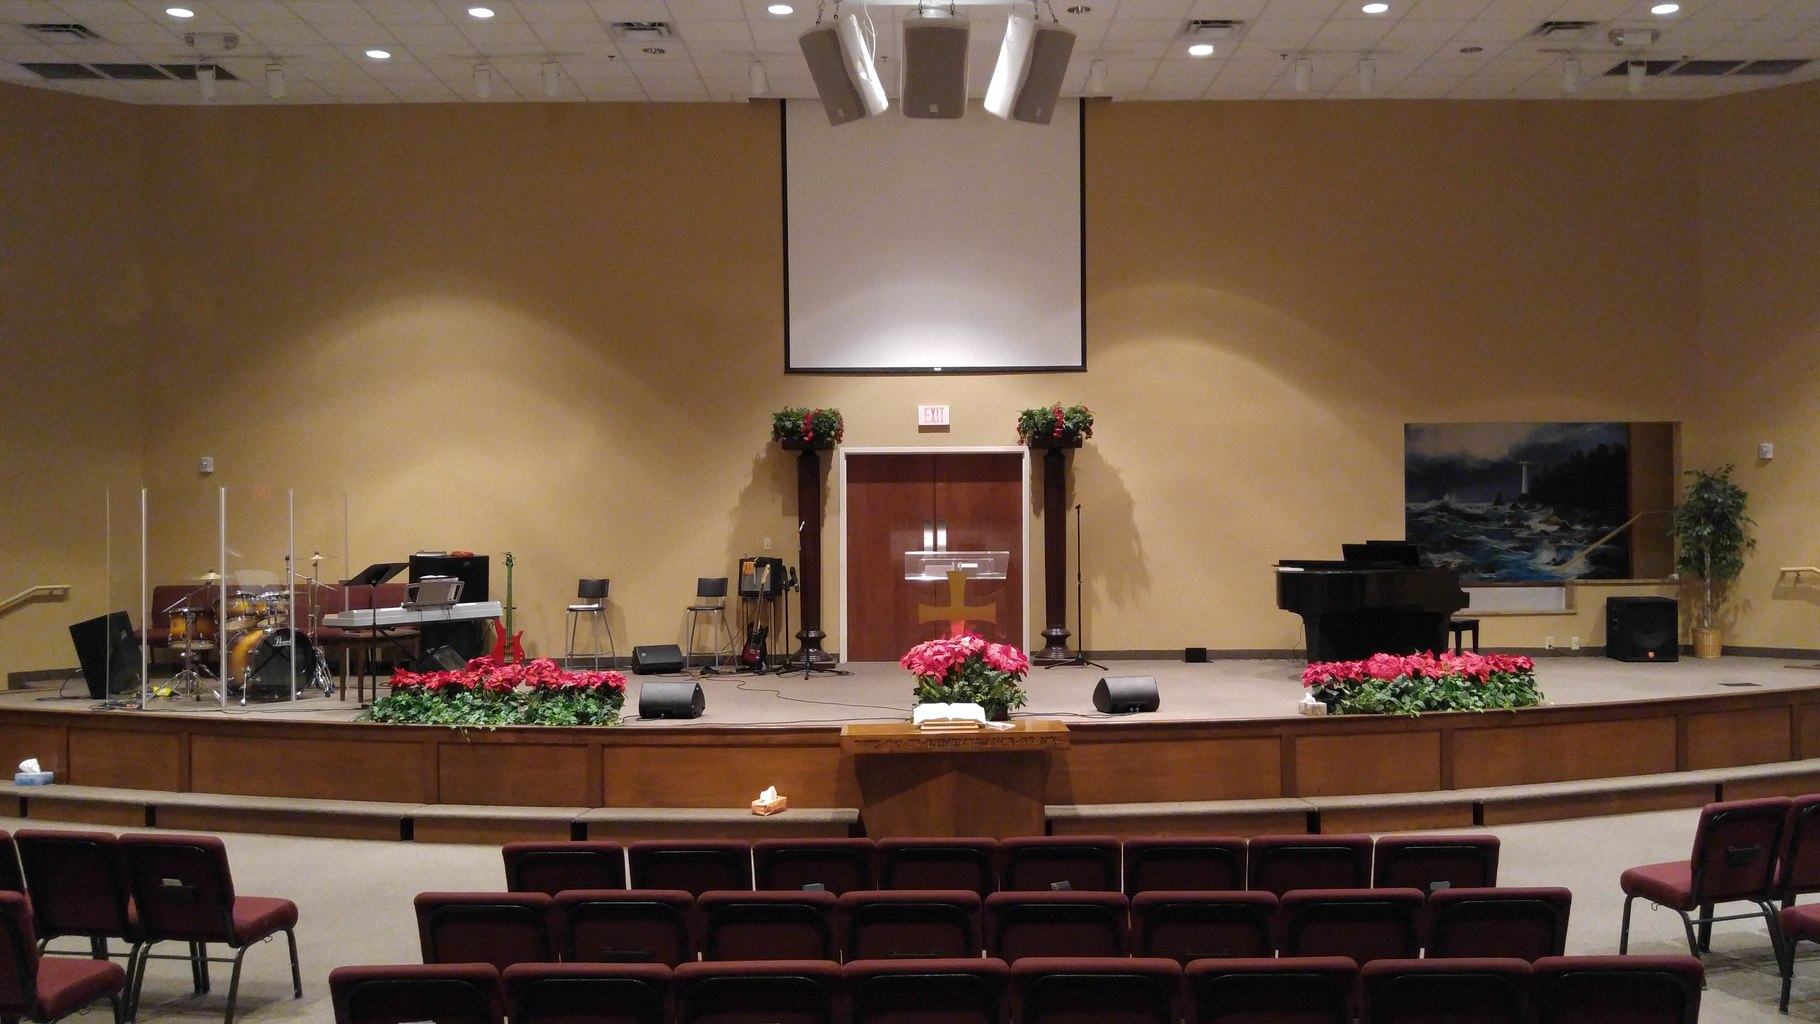 podium showing full and some of the chairs in the congregation